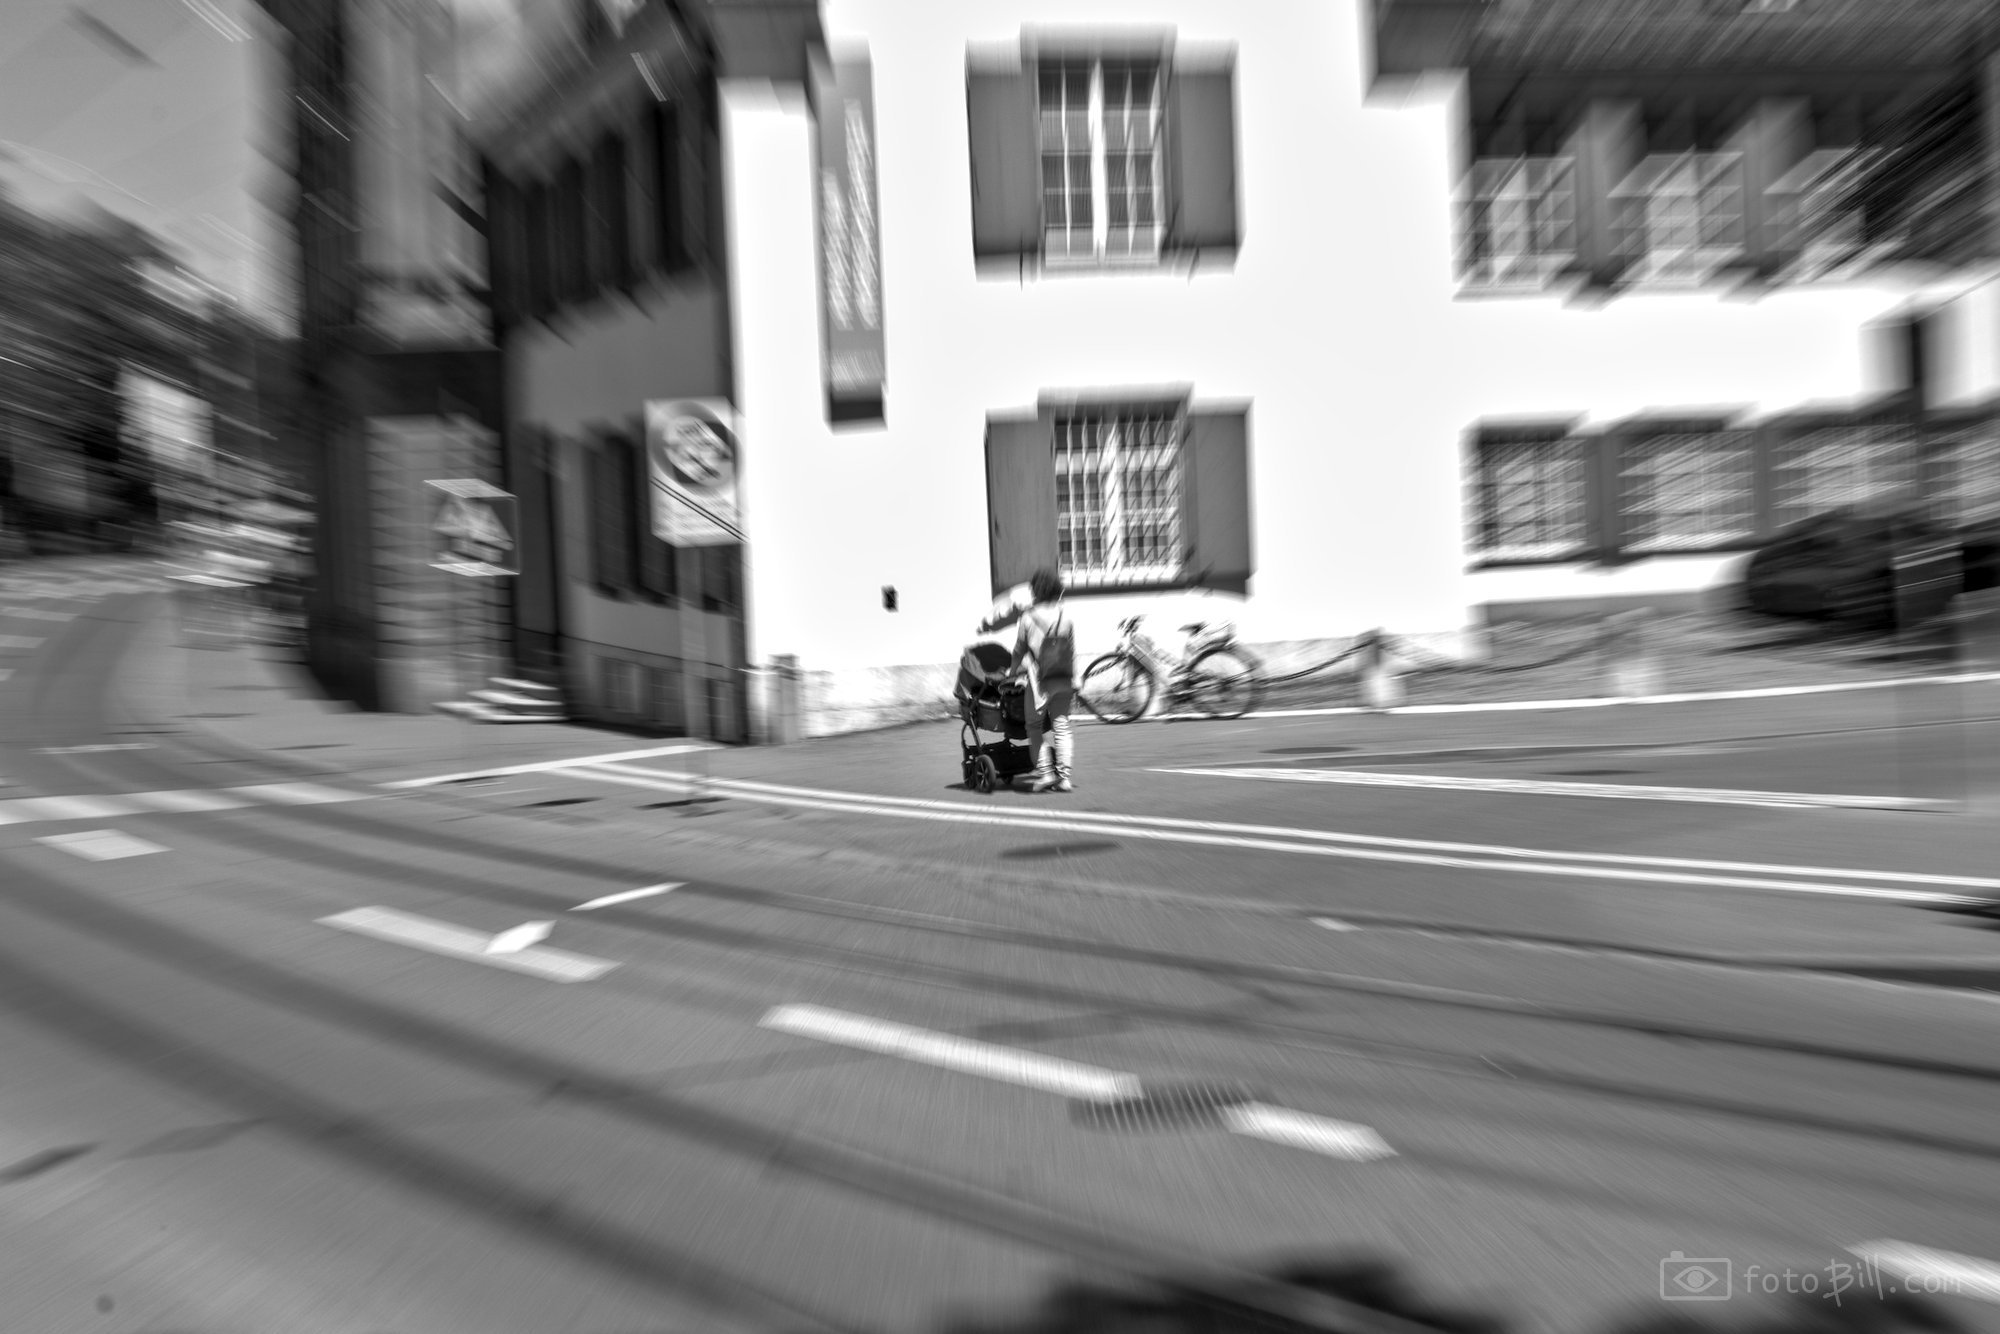 Street_Photo_Basel_0172_slctd_web_noexif.jpg